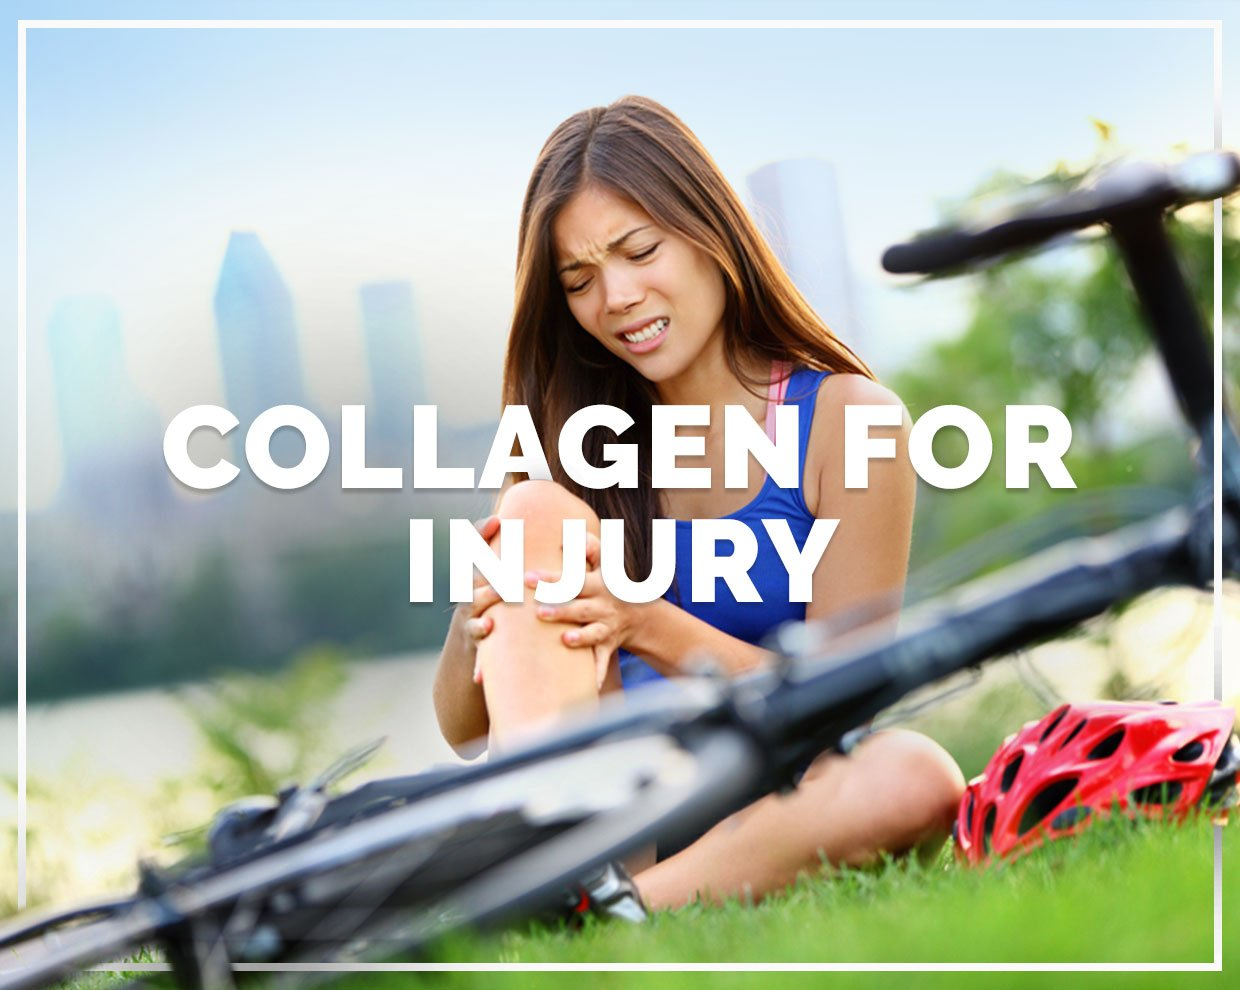 Collagen for injury